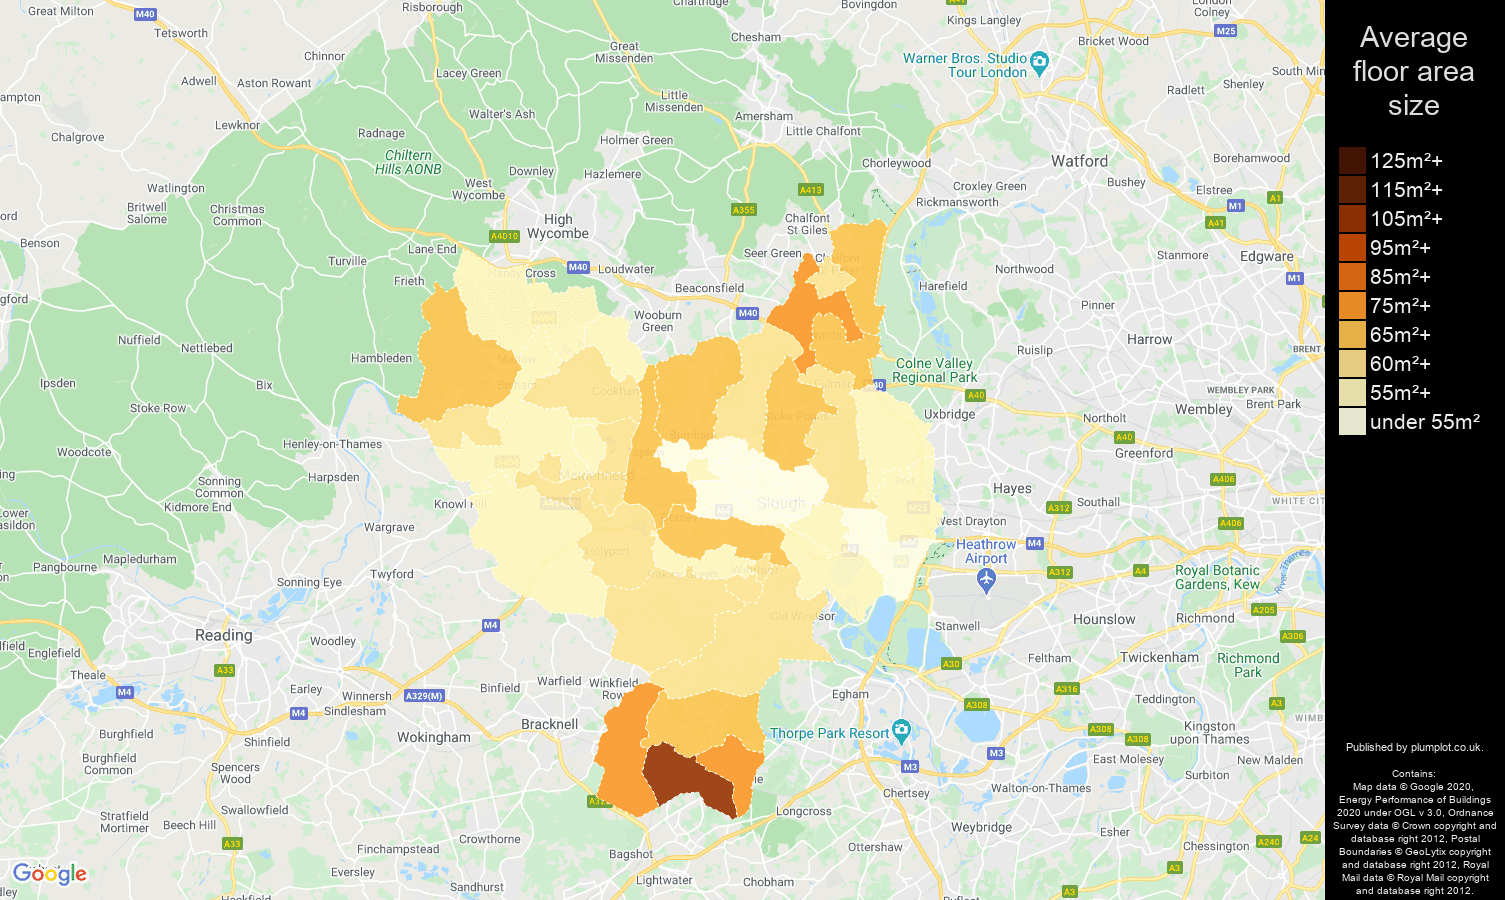 Slough map of average floor area size of flats